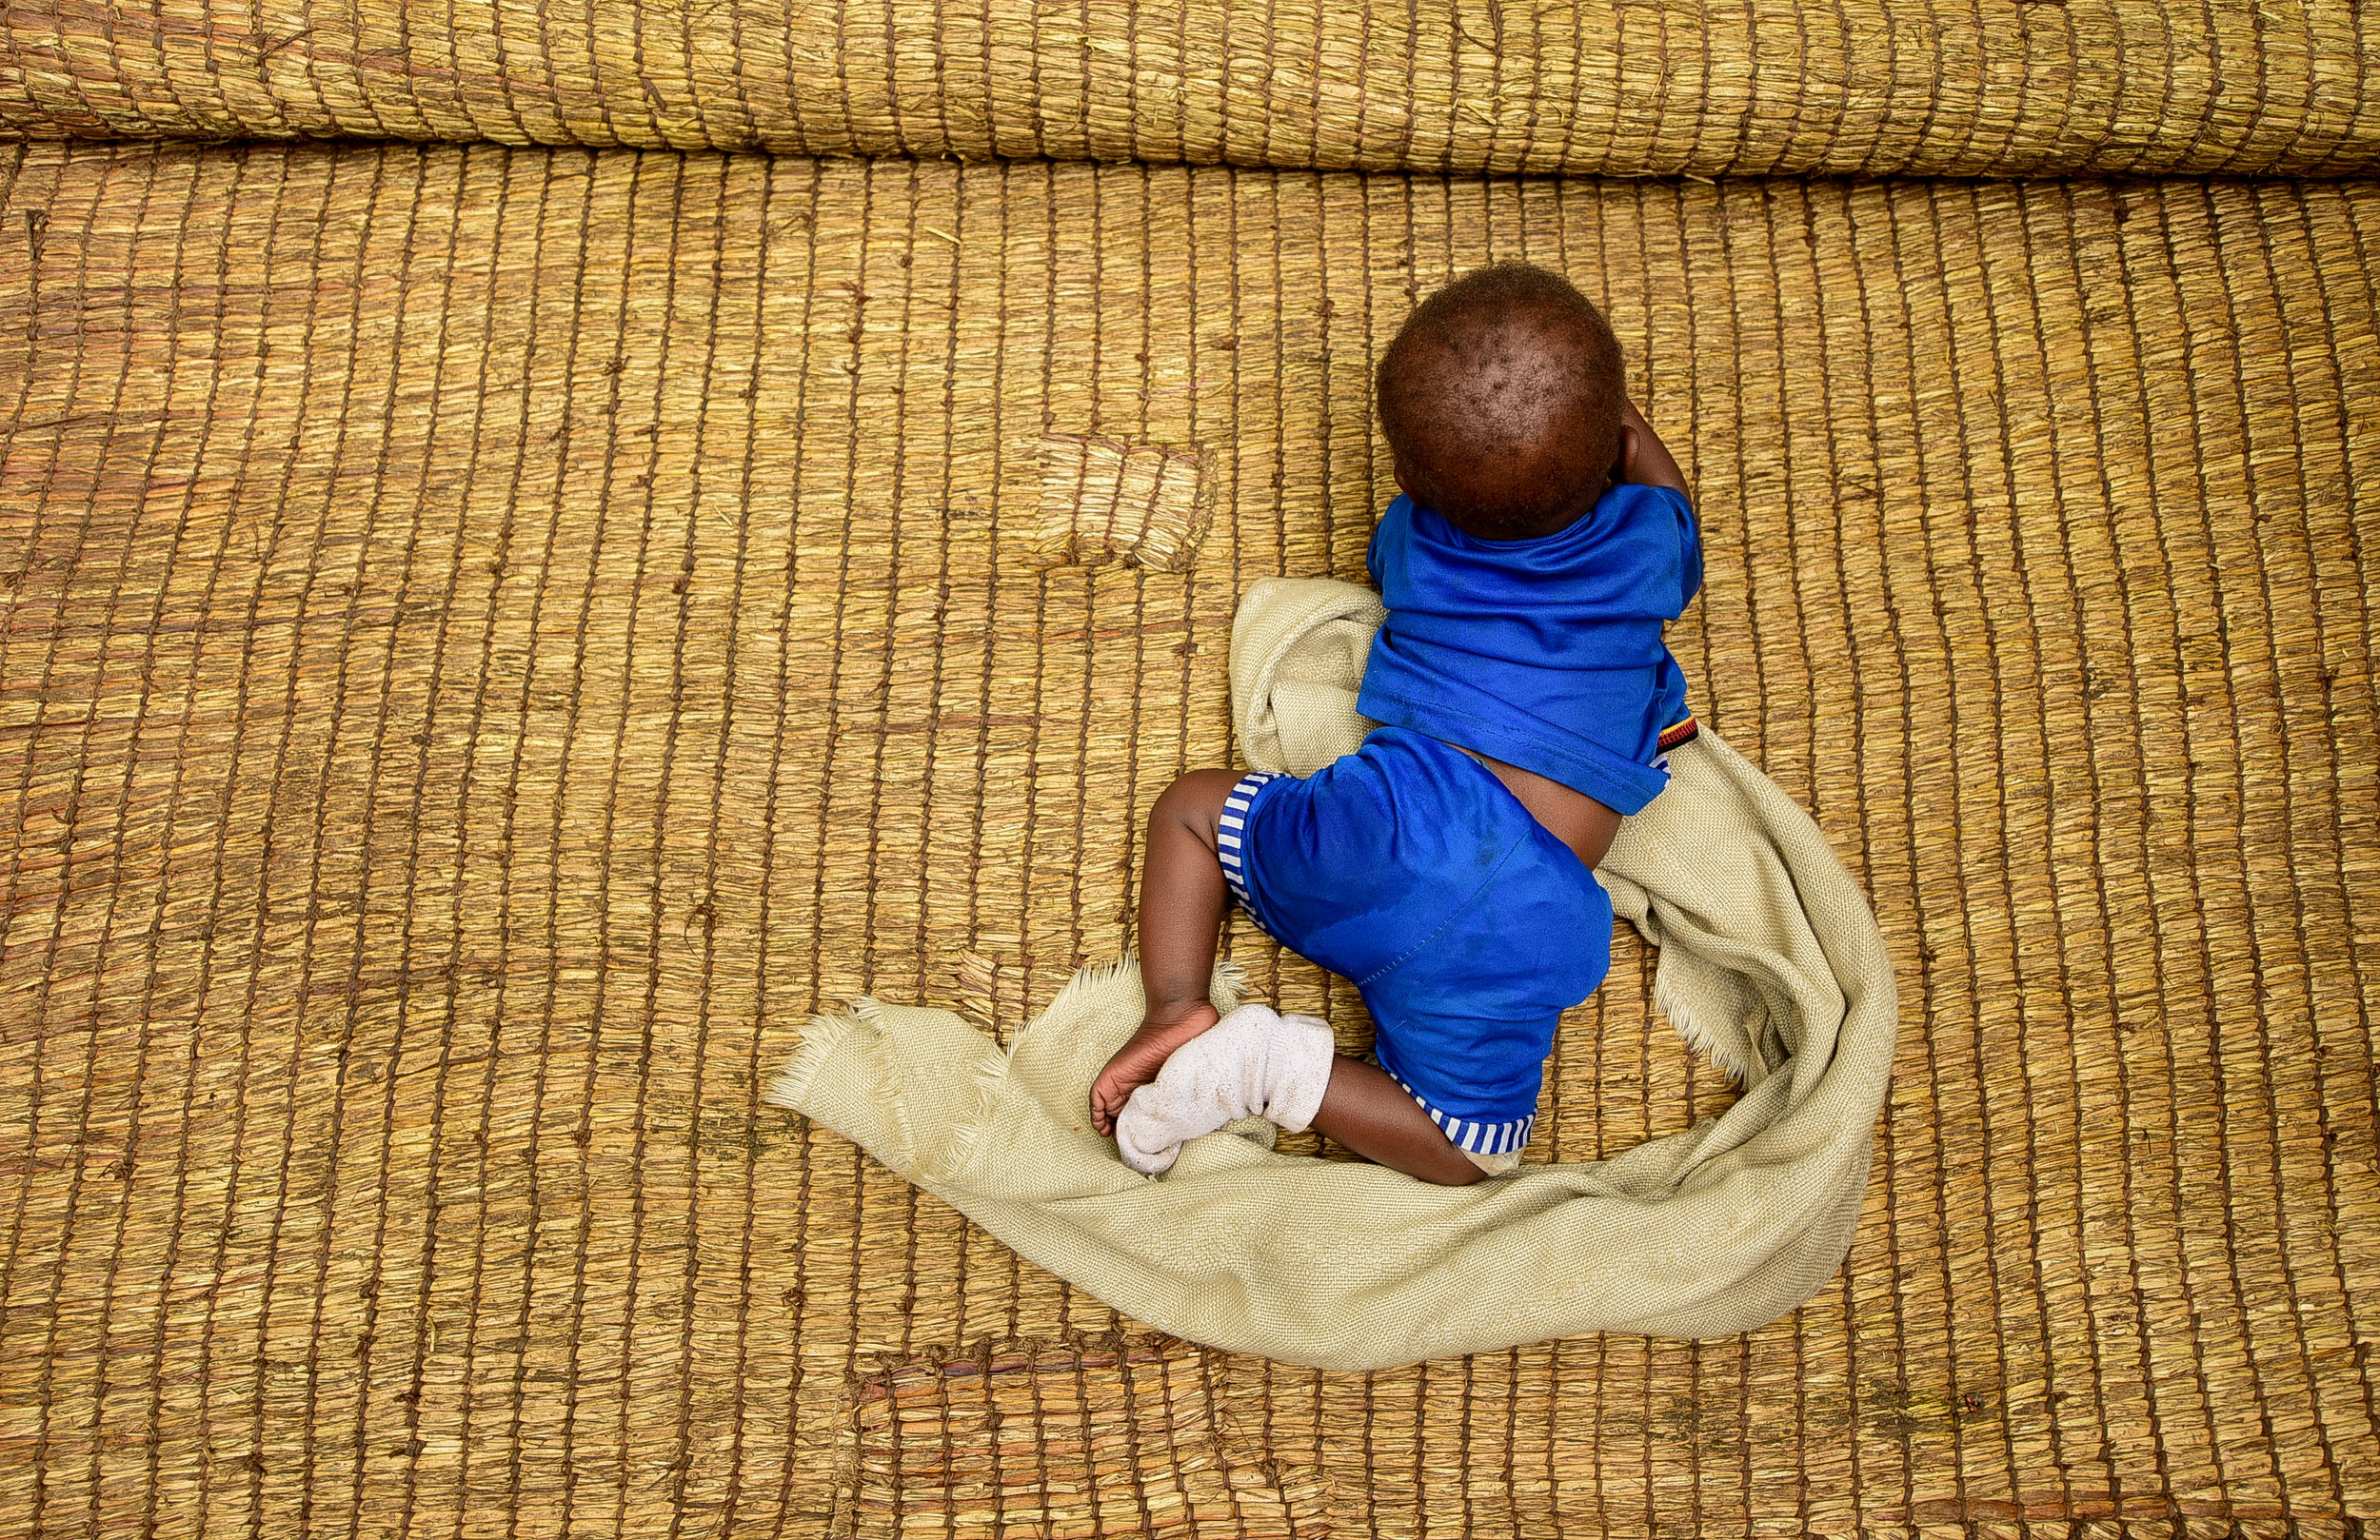 Uwiduhaye Divine waits for her lunchtime Sosoma, a fortified porridge blend of soy, sorghum, and maize meant as a nutritional supplement for children.